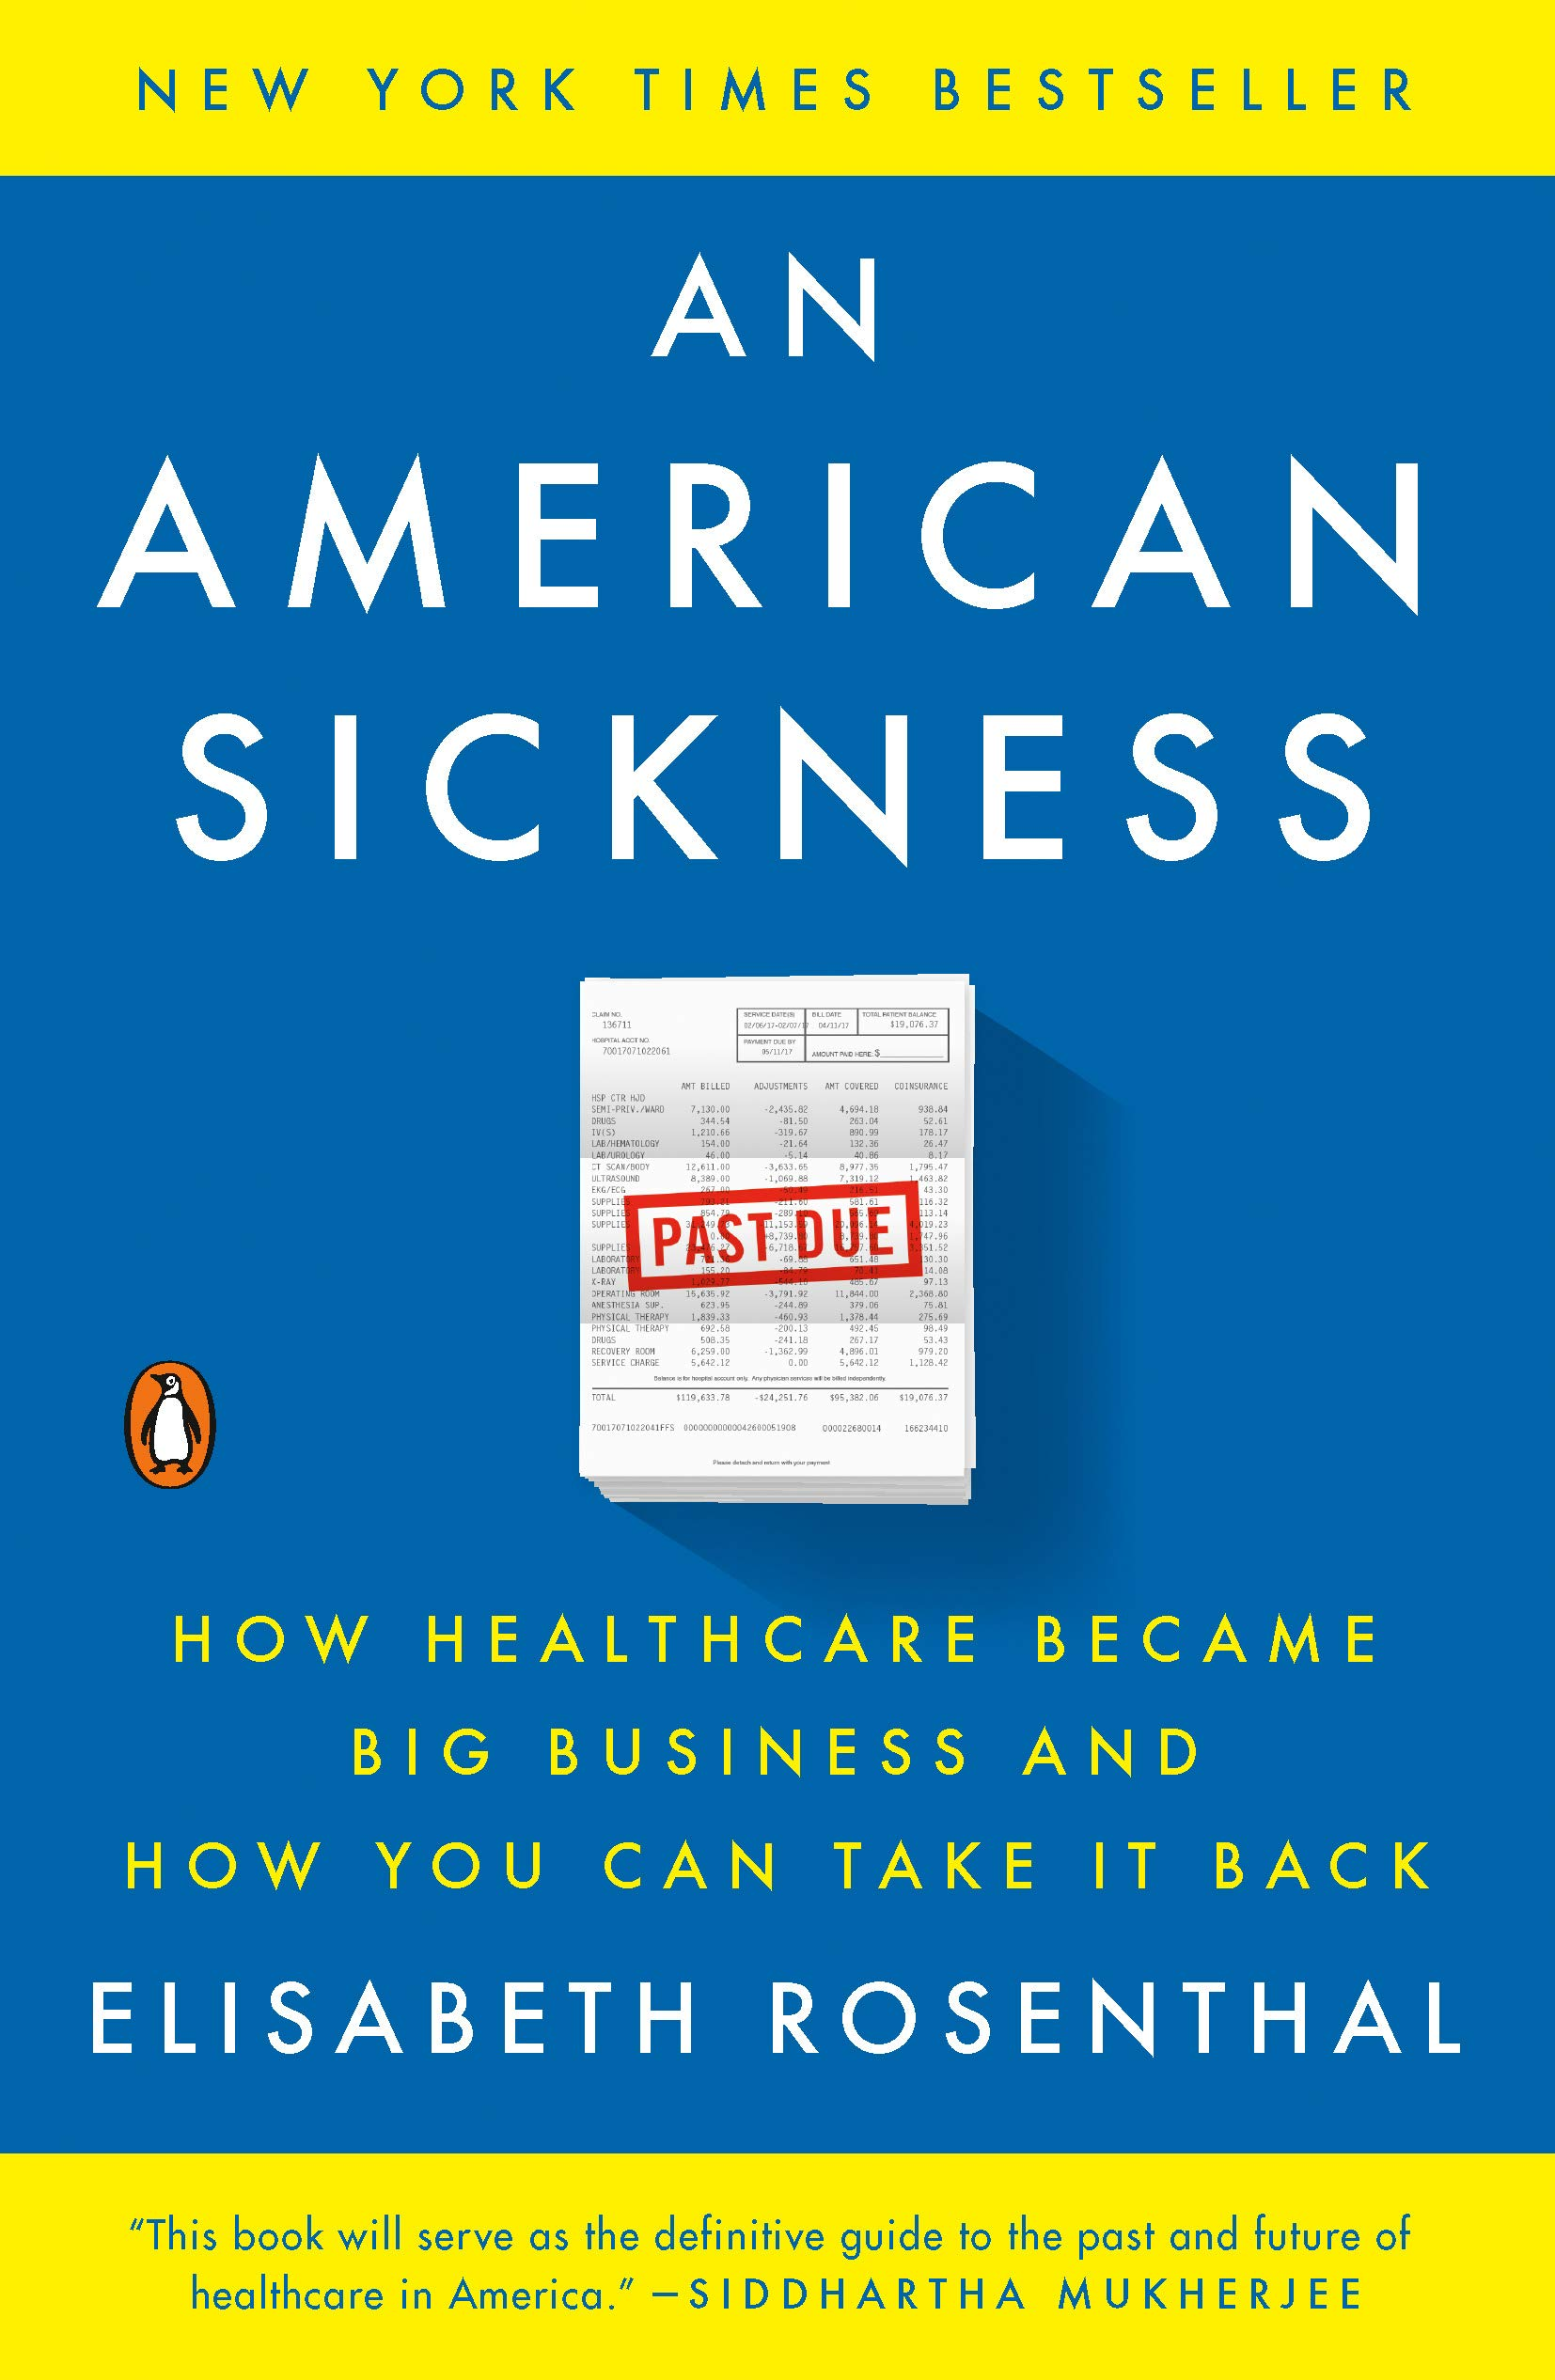 American Sickness Healthcare Became Business product image